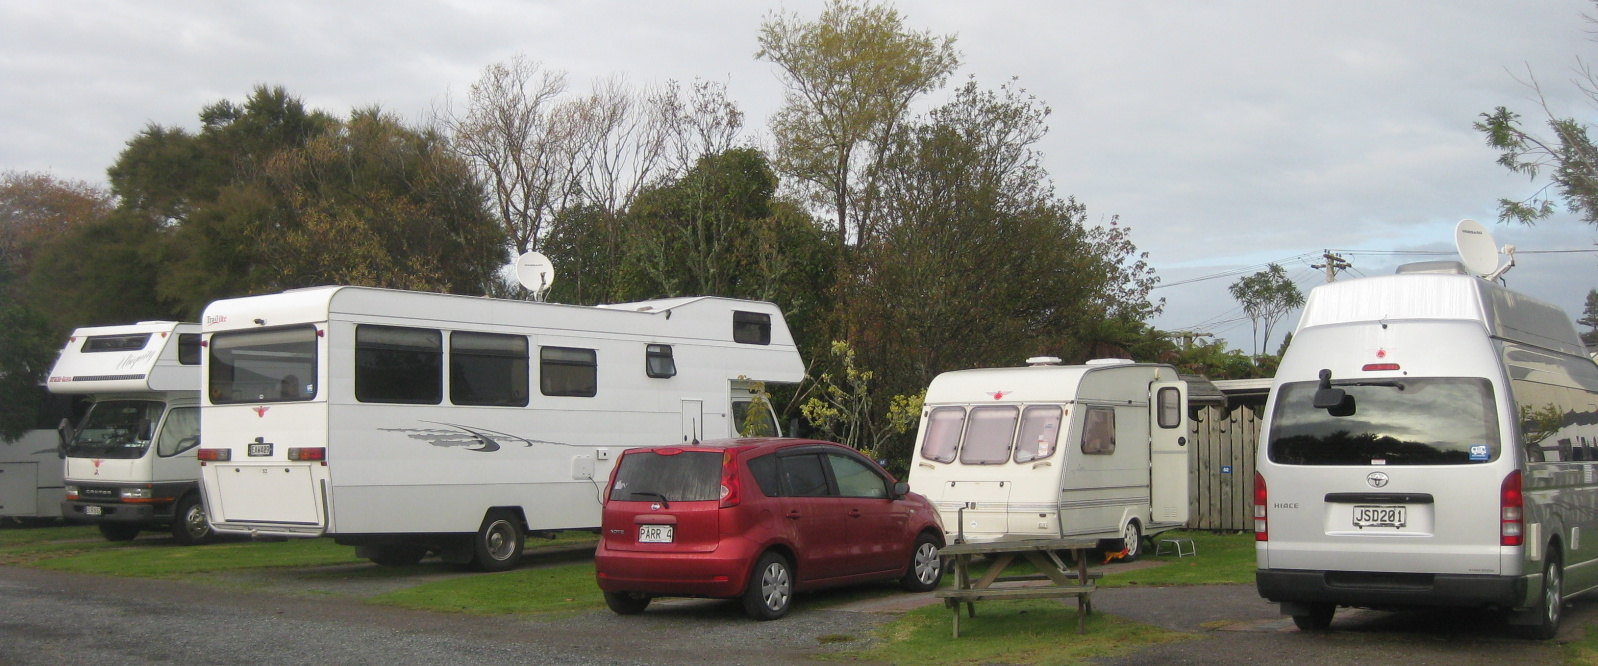 My little car and little caravan and my bigger friends